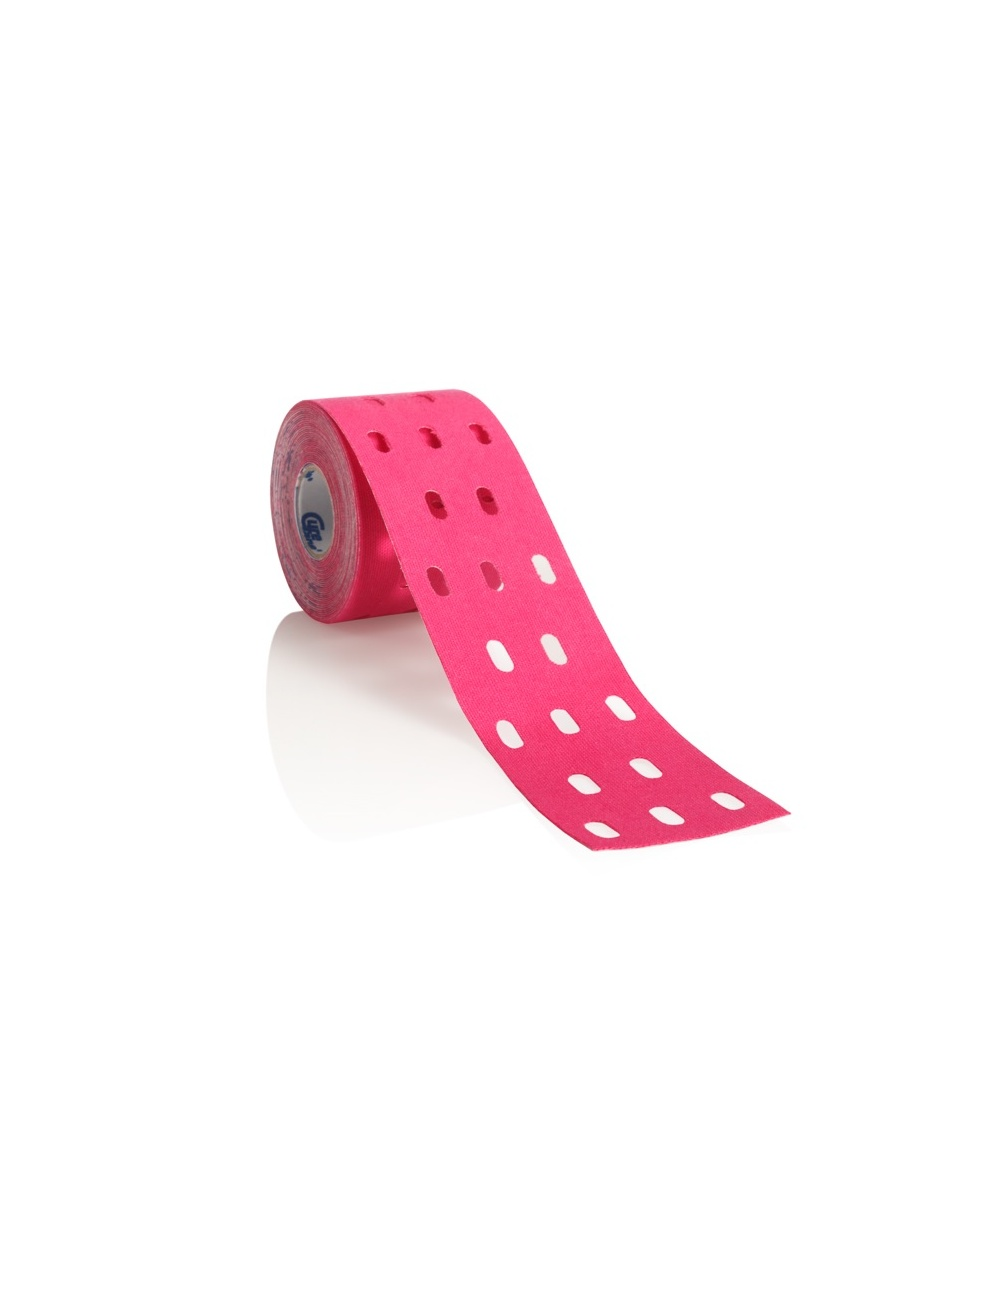 CureTape Punch Single Roll and box - Pink